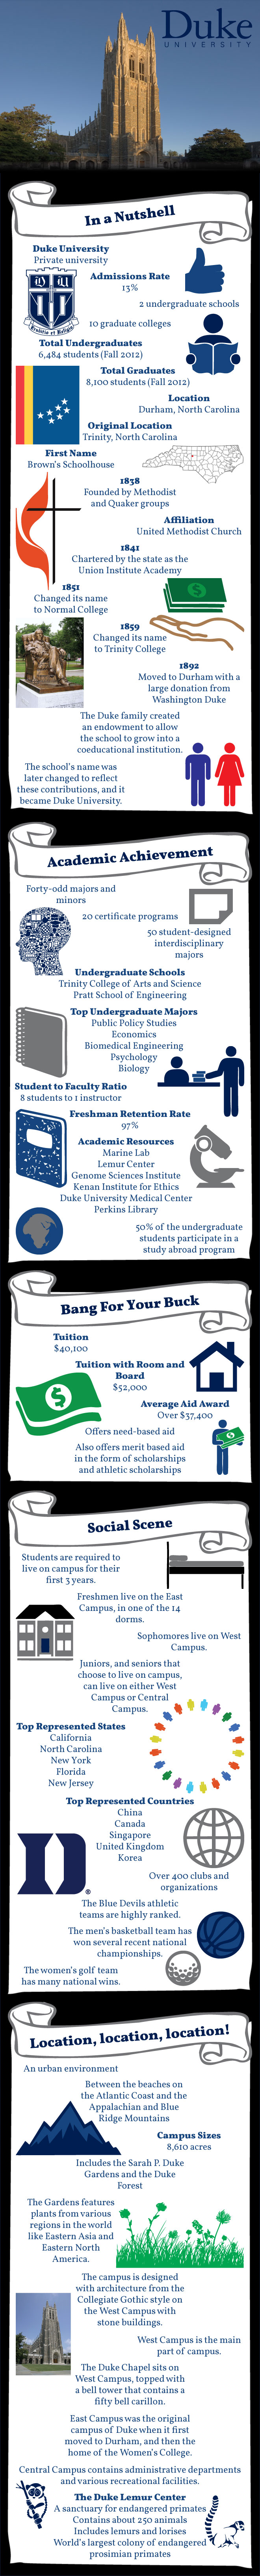 The Duke University #infographic  Re-pin to share the Infographic. :)